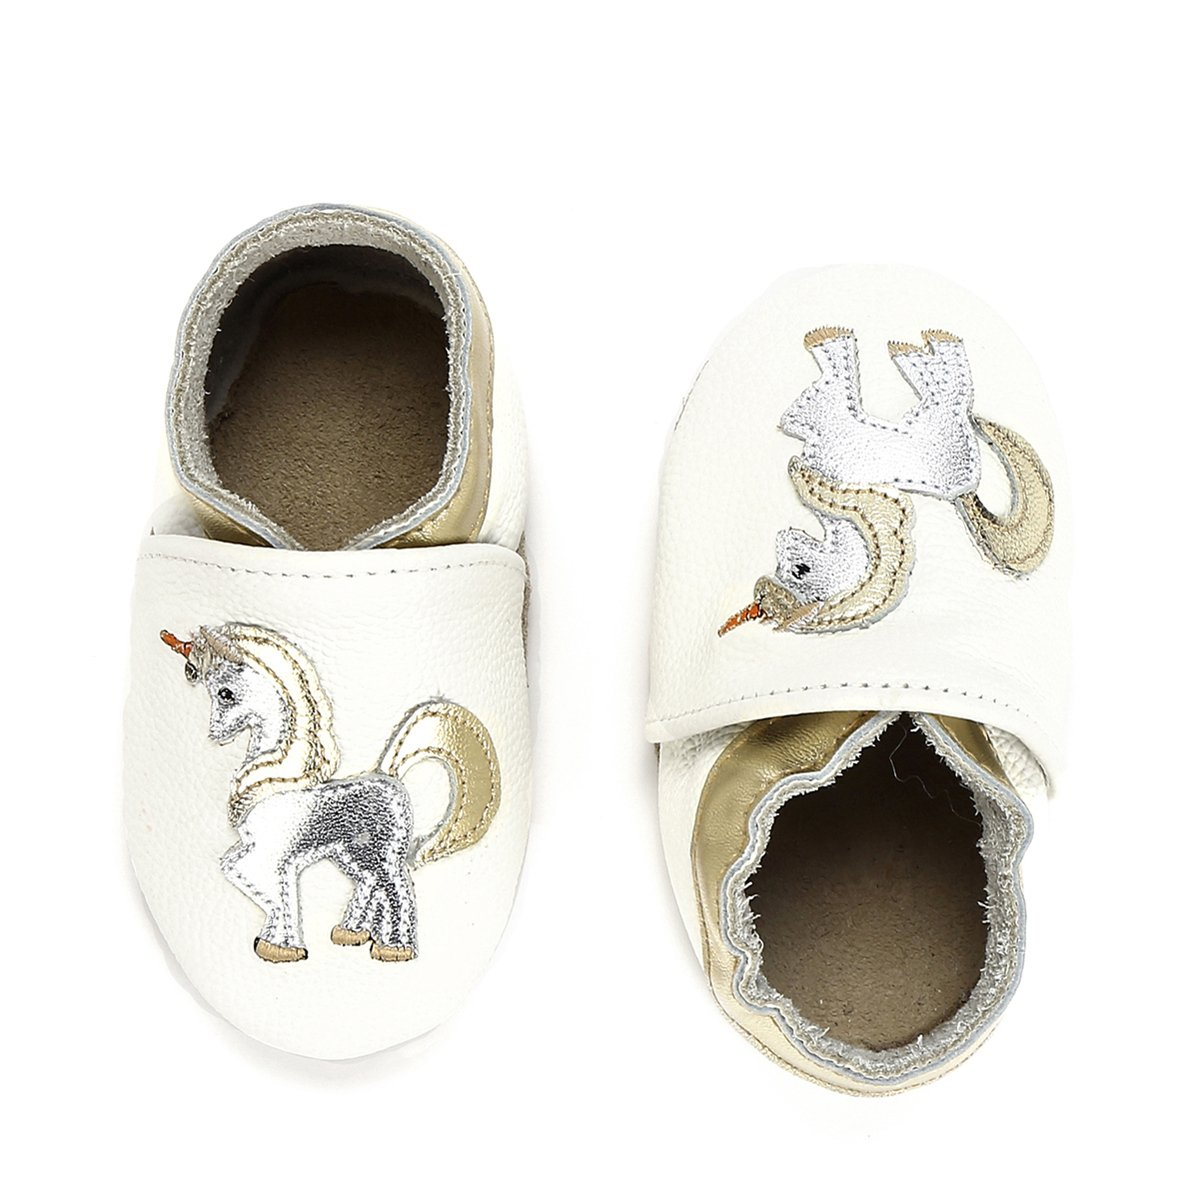 Unicorn Baby Moccasins Girl and Boy Soft Leather Toddler First Walker Shoes 0-6-12-18-24 Months (7 M Toddler(5.9inch/ 18-24Mo.), White Unicorn)